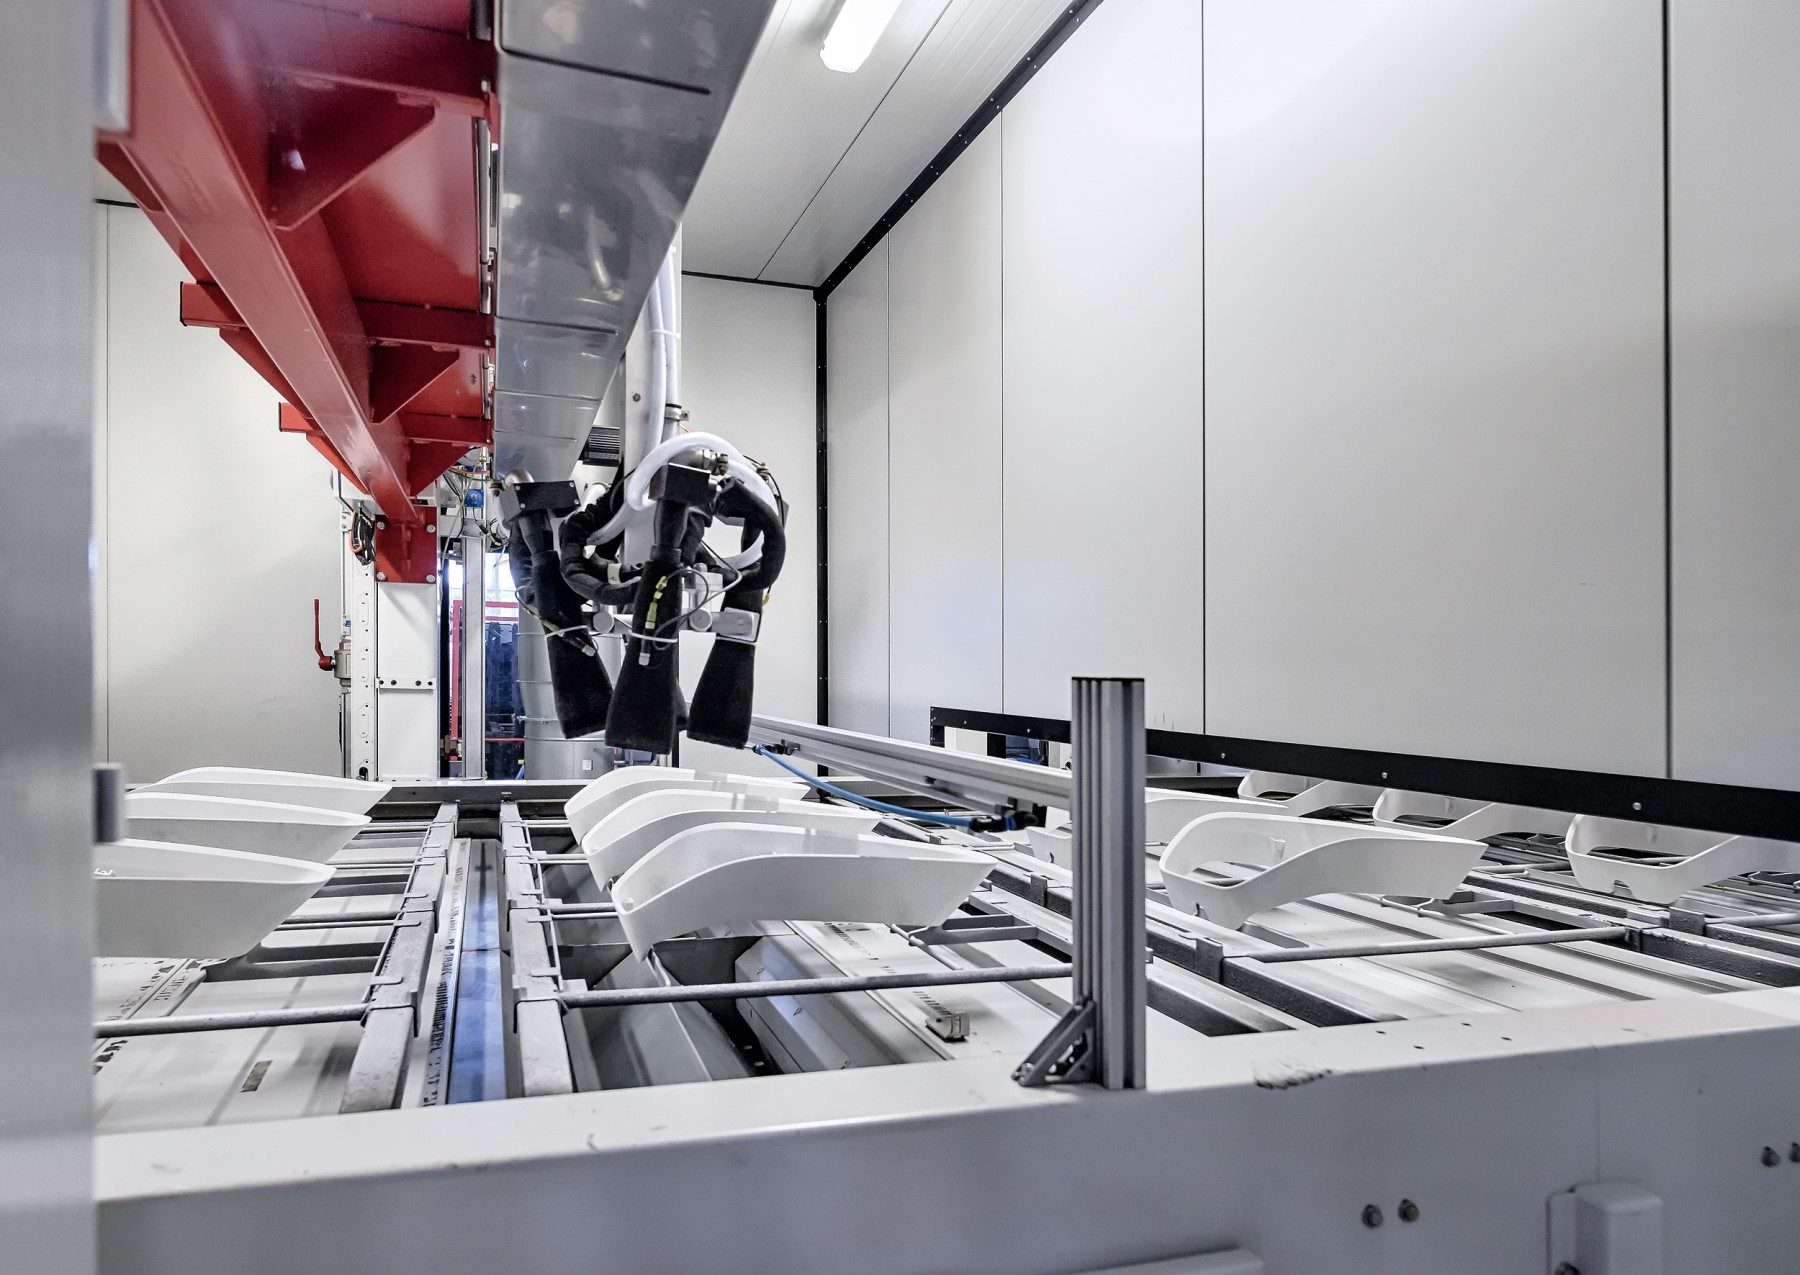 Gentle and targeted: Contact-free cleaning of workpieces with CO2